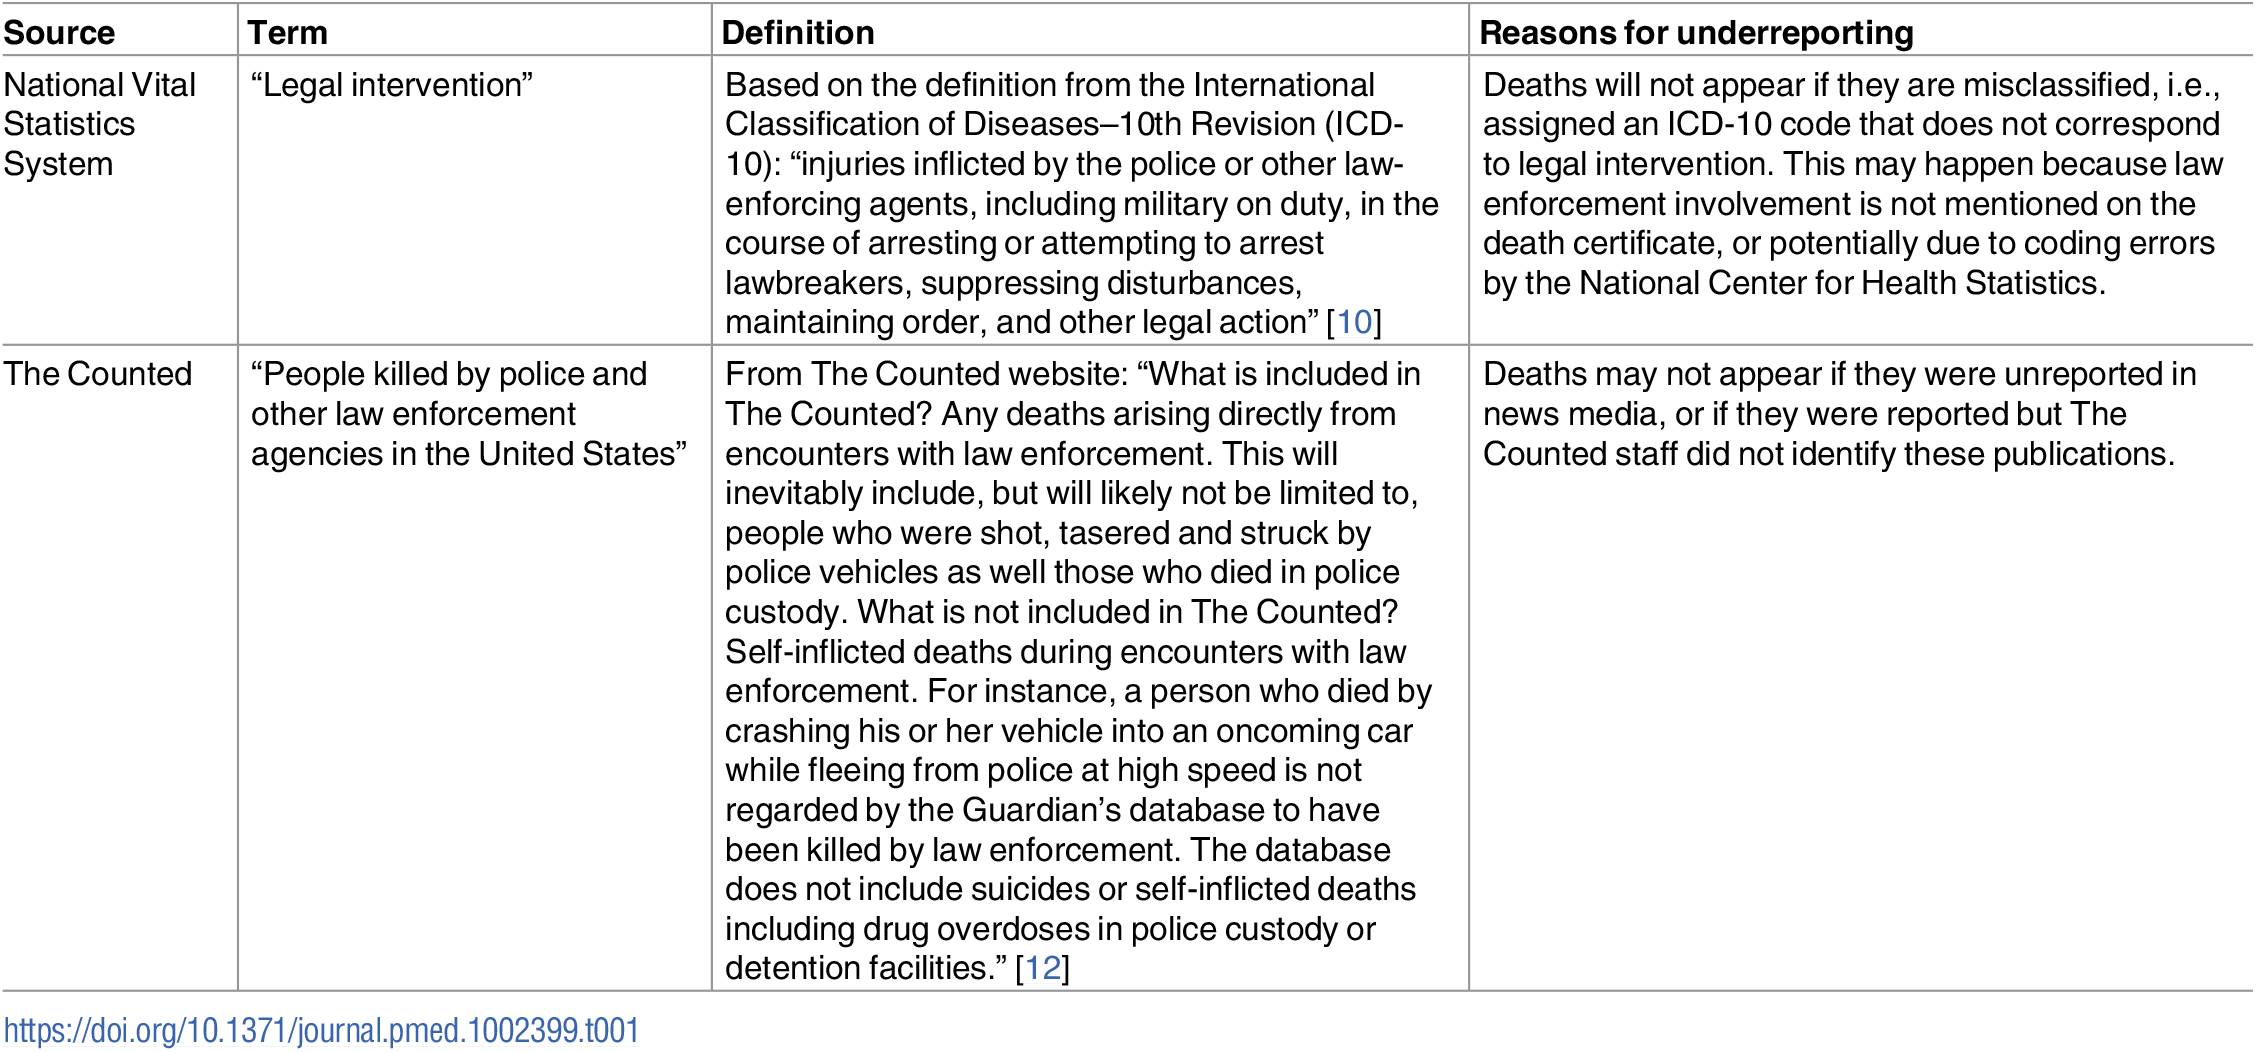 Definitions for law-enforcement-related deaths and reasons for underreporting in the National Vital Statistics System and The Counted.